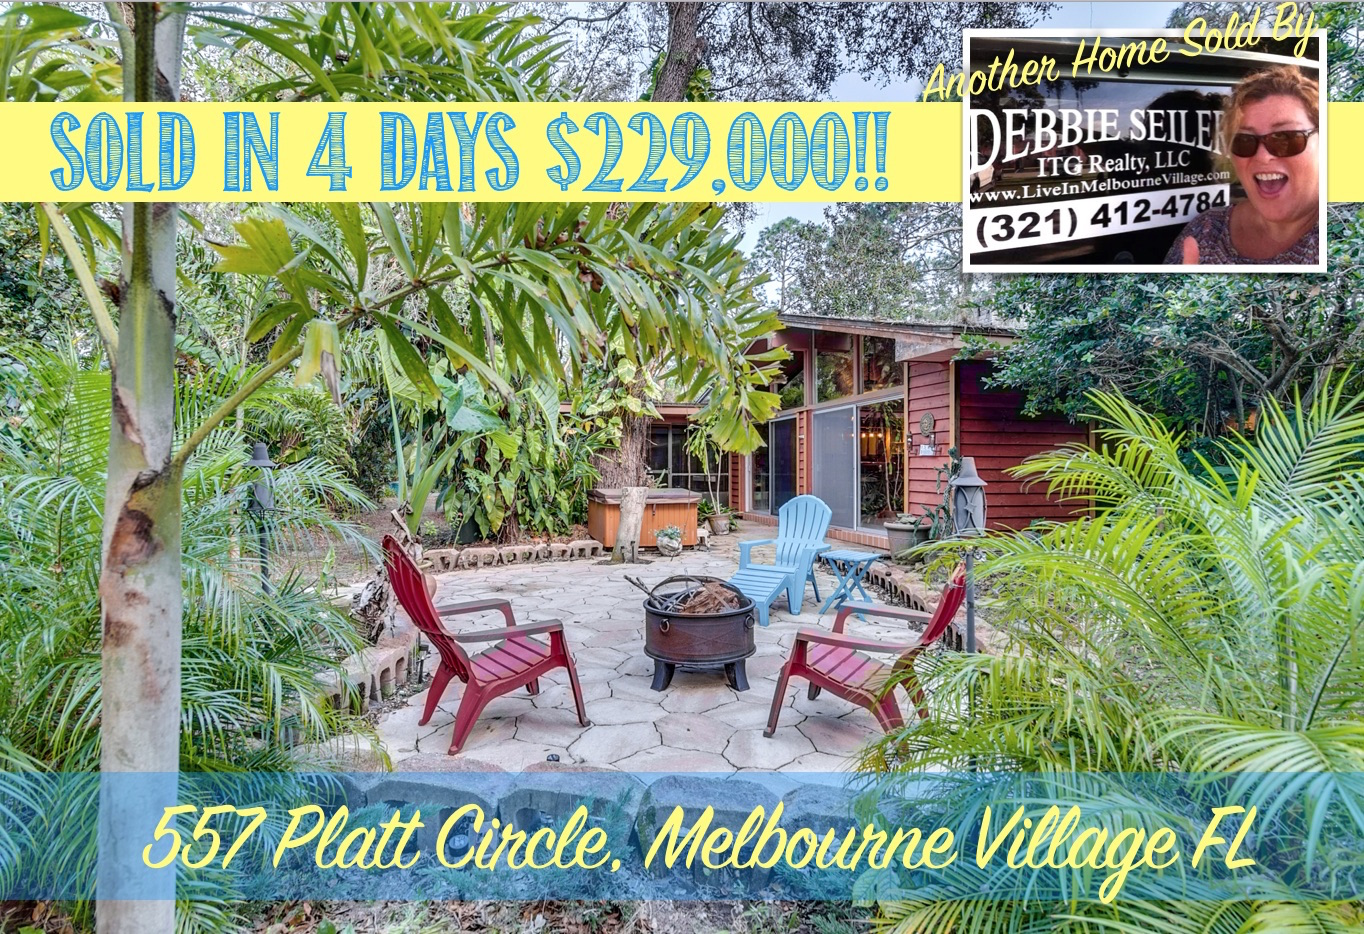 557 Platt Sold in Melbourne Village